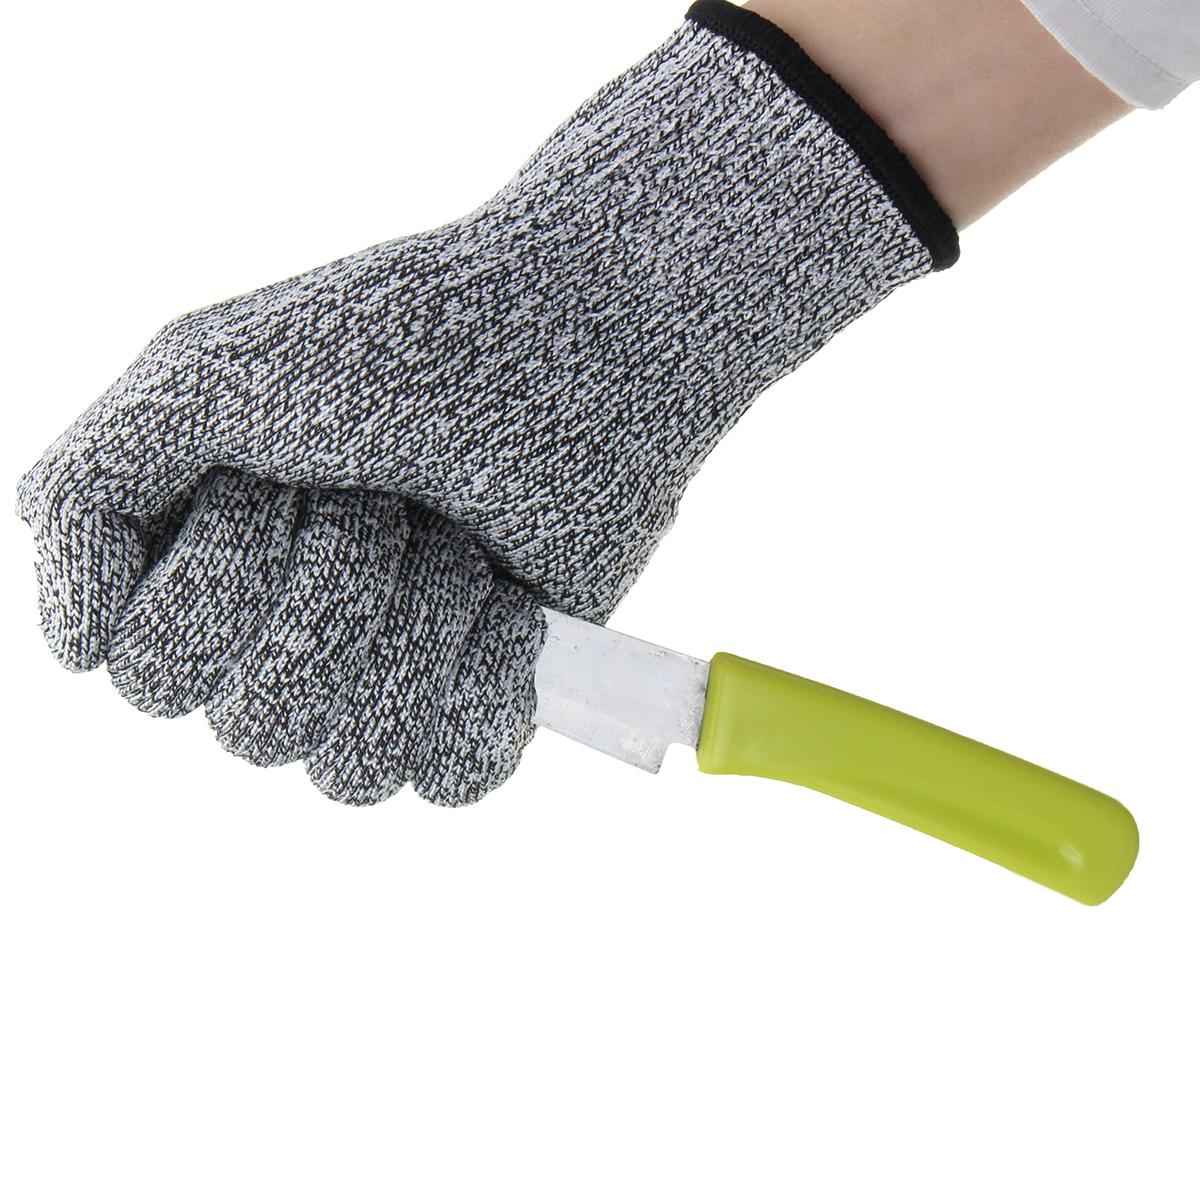 NEW Anti-Cutting Cut Resistant Gloves Food Grade Kitchen Butcher Protection -Level 5 Workplace Safety цена